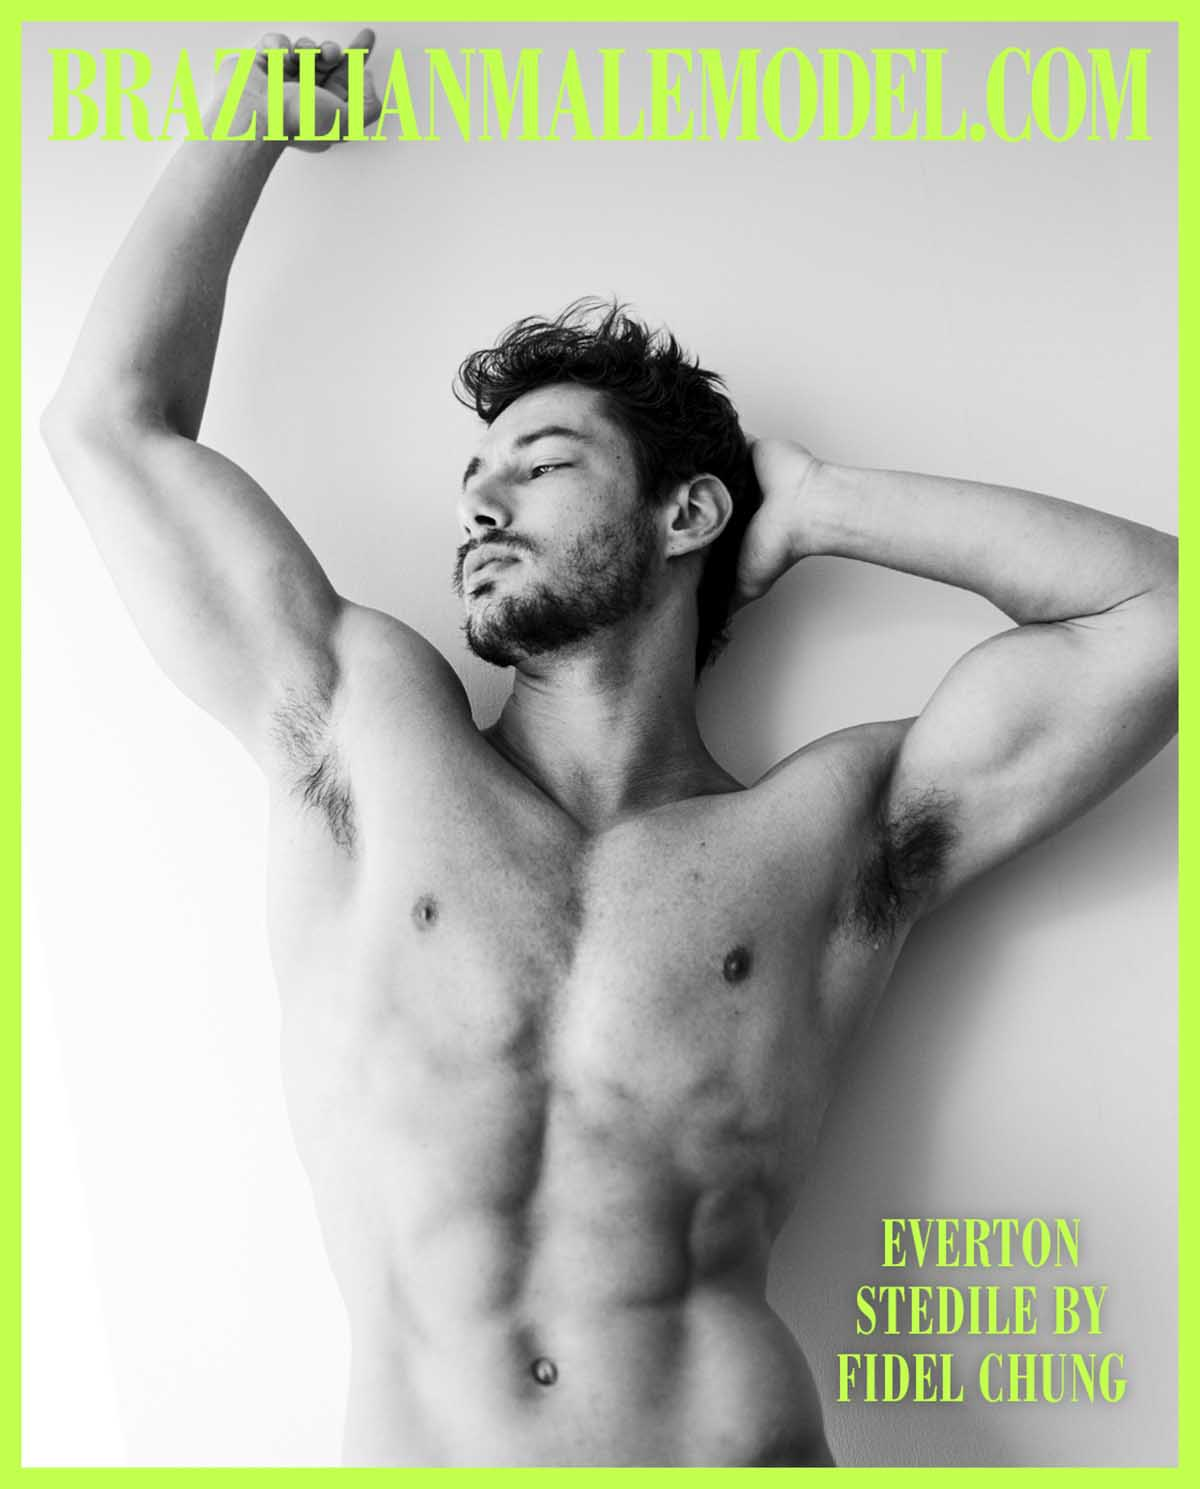 EVERTON STEDILE X FIDEL CHUNG X BRAZILIAN MALE MODEL